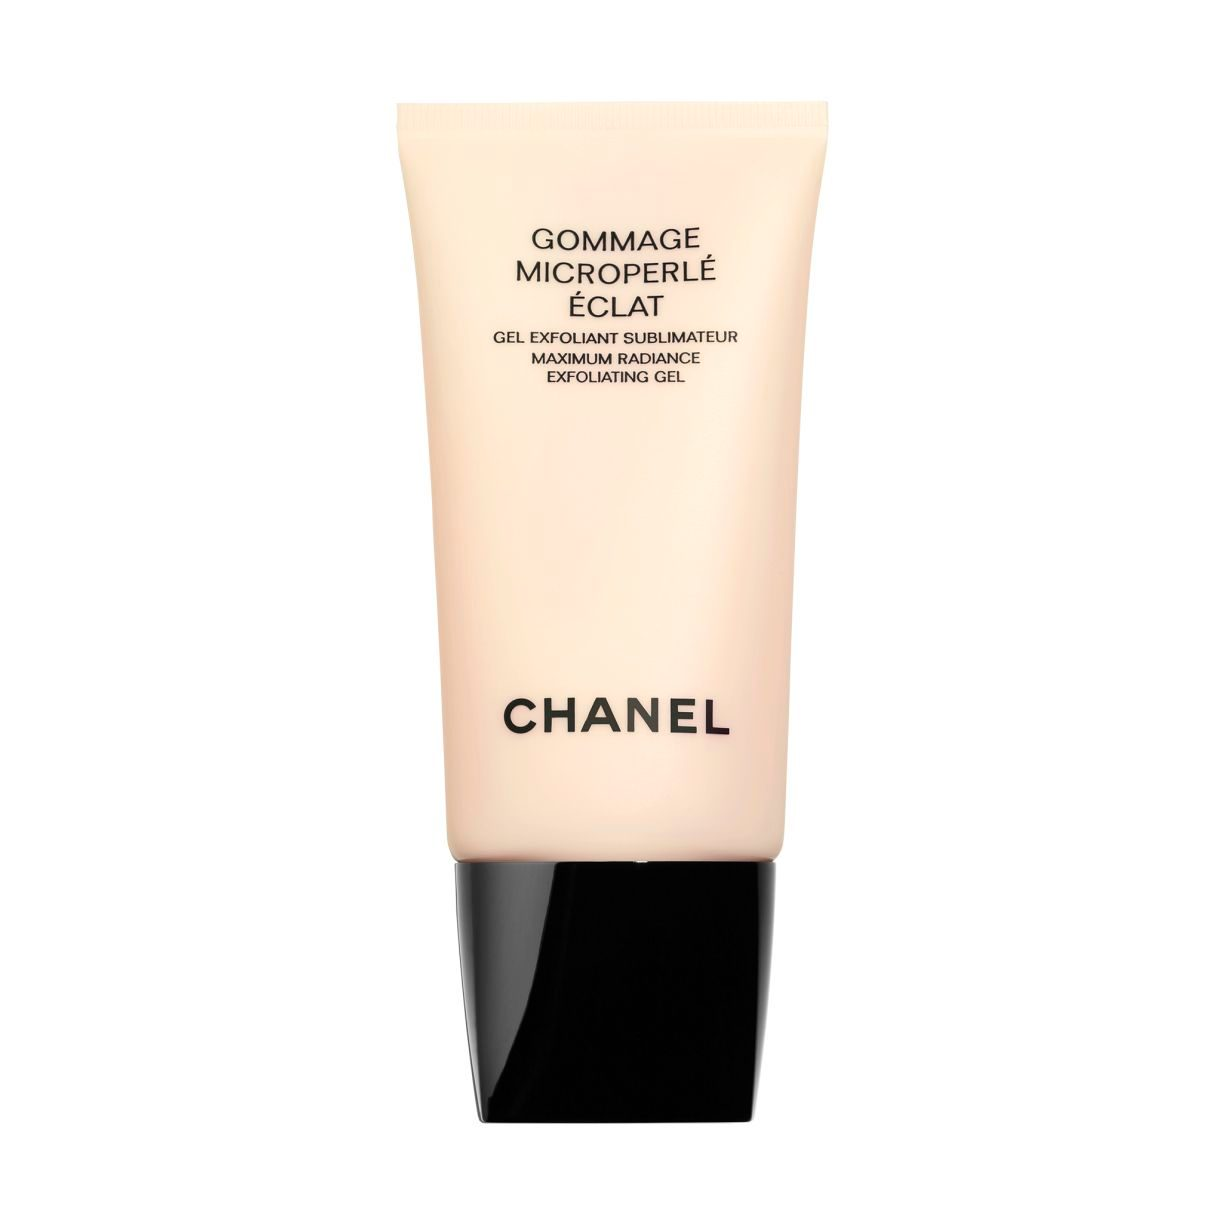 GOMMAGE MICROPERLÉ ÉCLAT MAXIMUM RADIANCE EXFOLIATING GEL 75ml